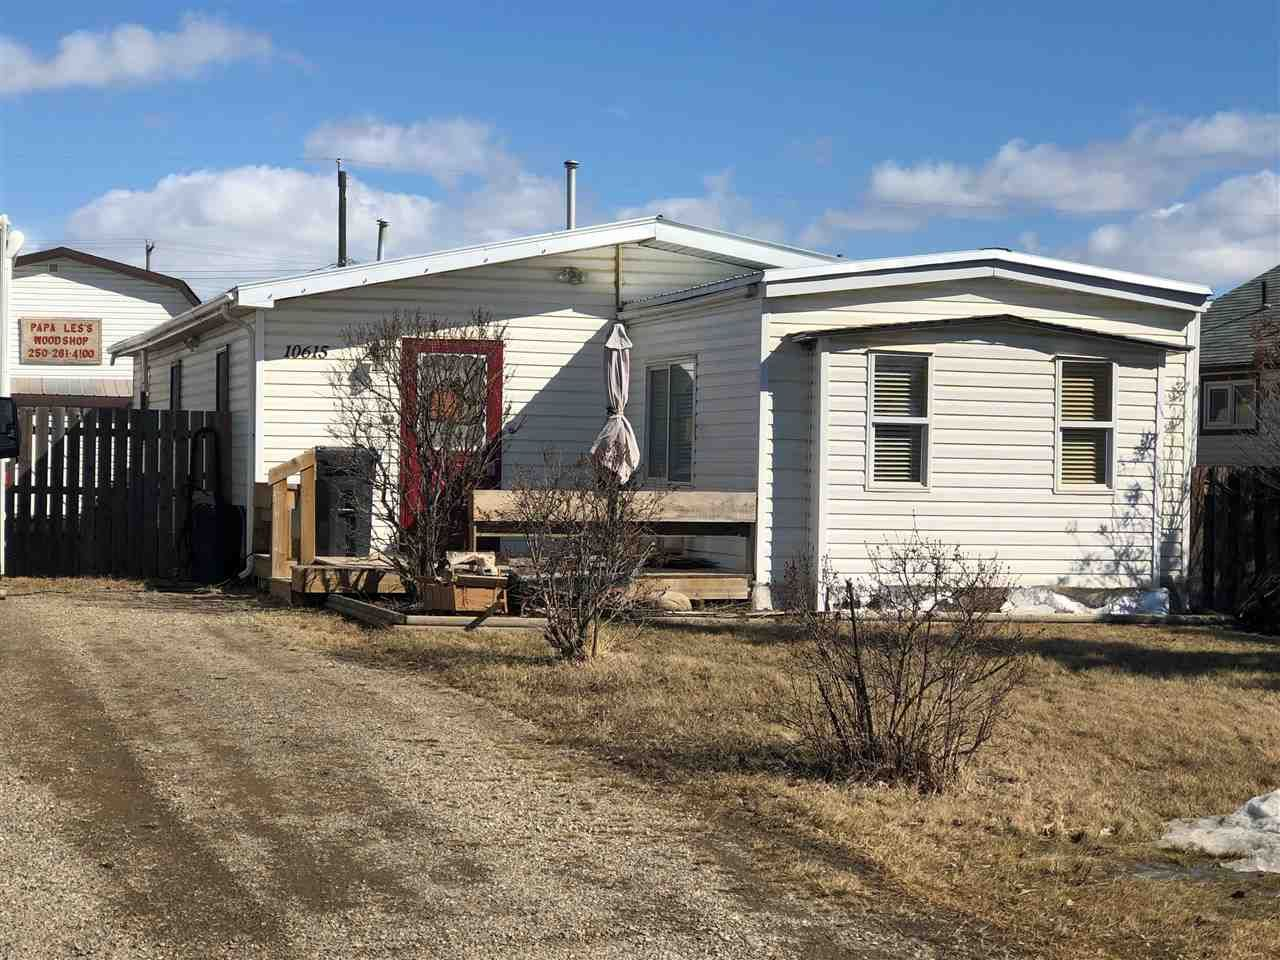 Main Photo: 10615 101 Street: Taylor Manufactured Home for sale (Fort St. John (Zone 60))  : MLS®# R2562496